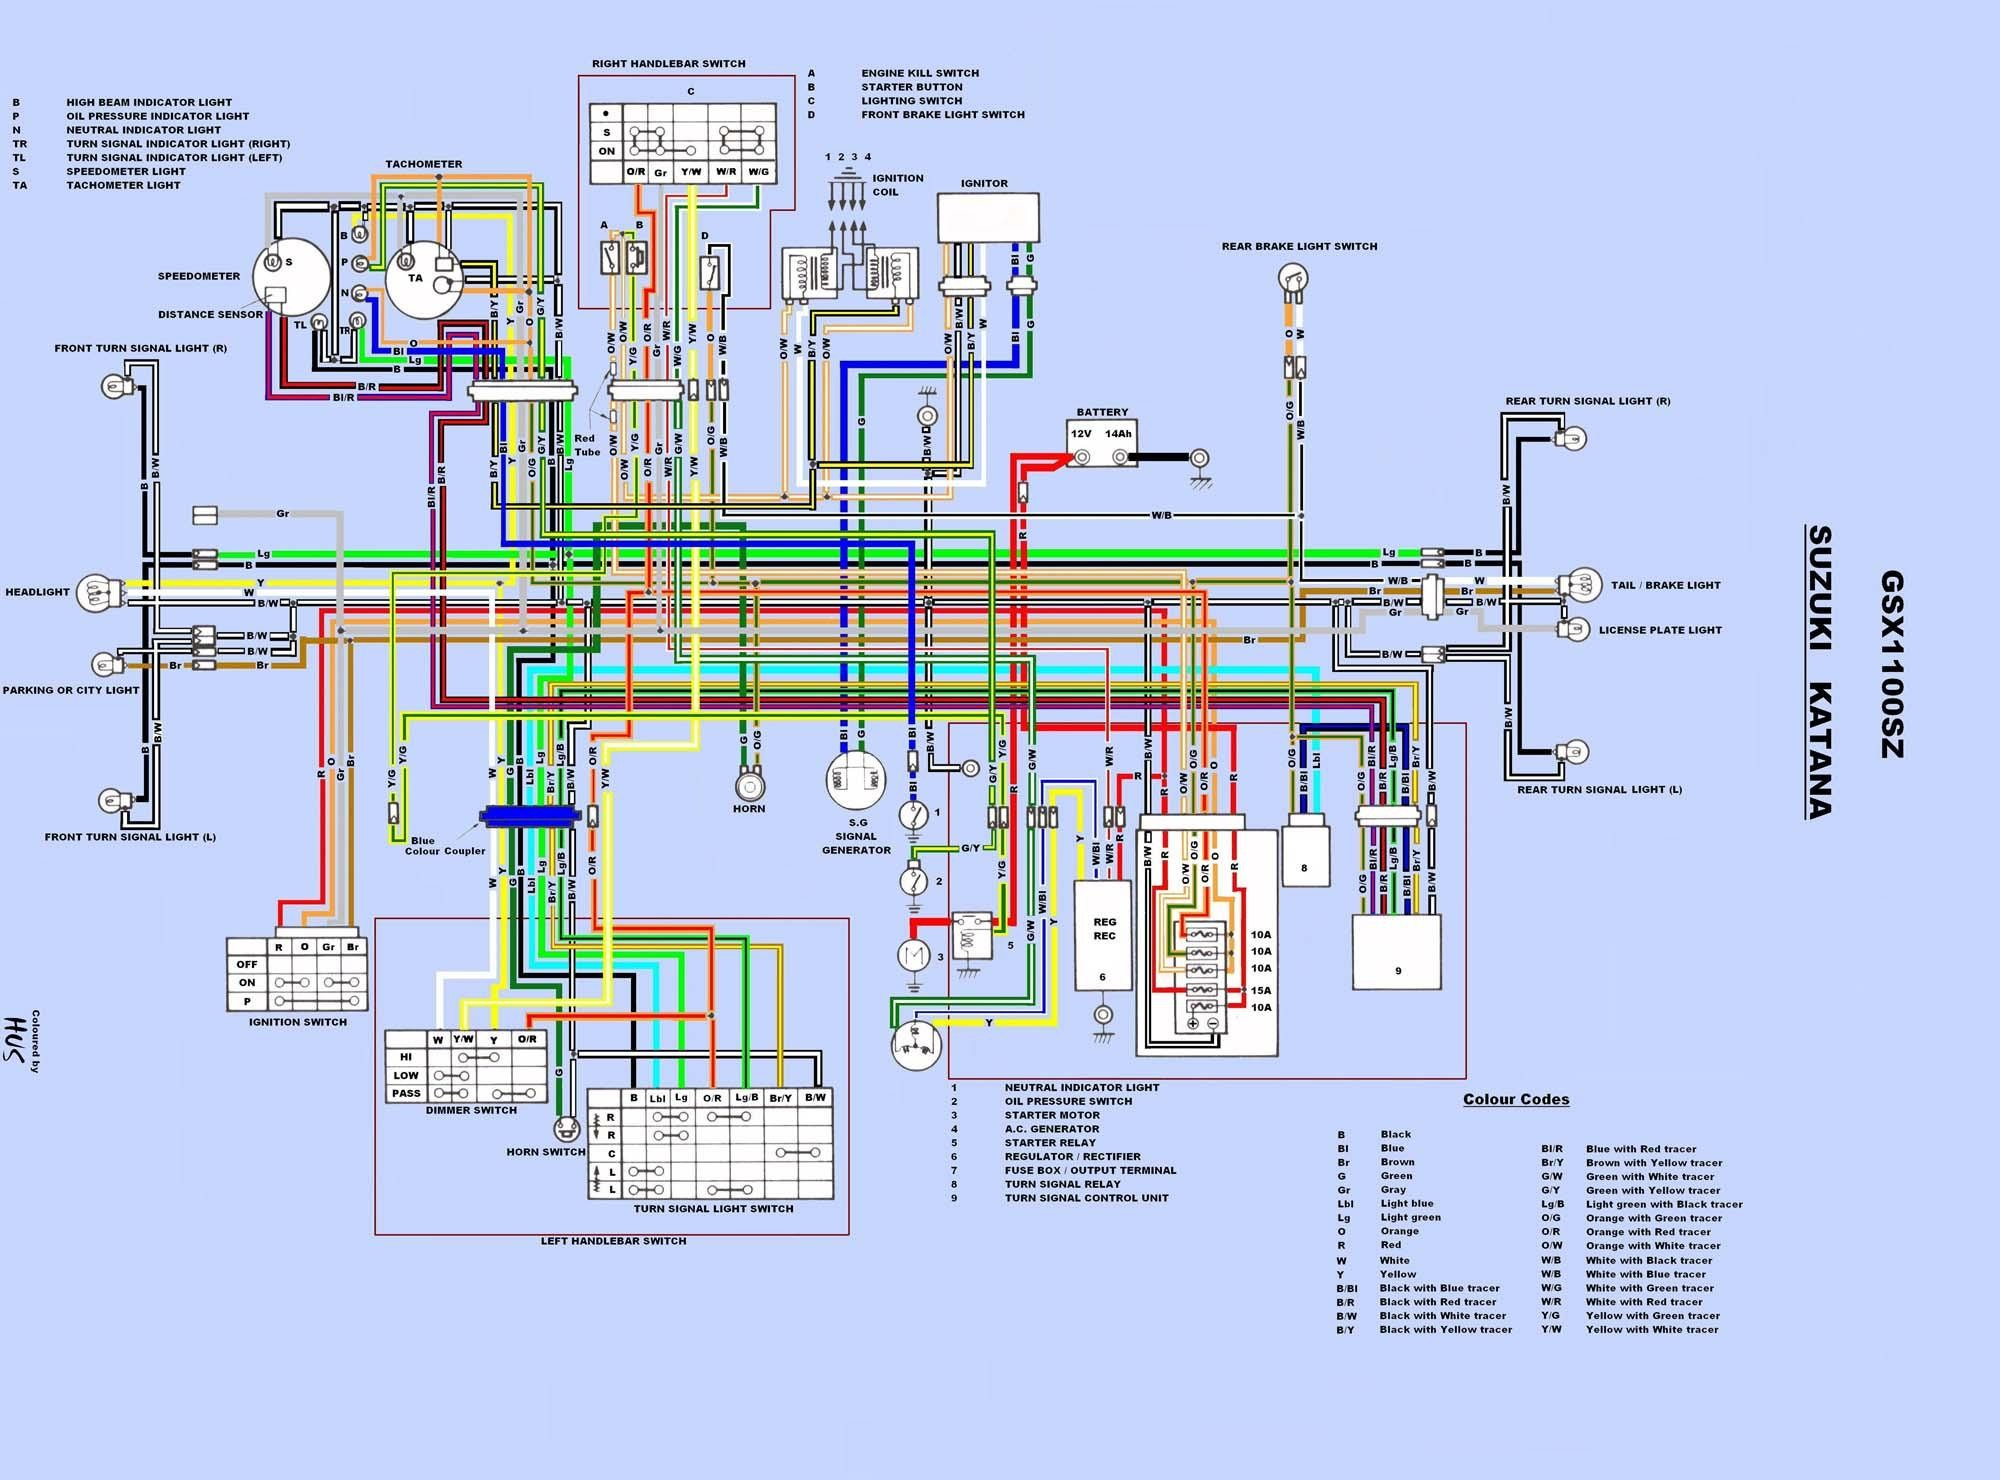 hight resolution of wiring diagram suzuki carry 1000 wiring diagram article reviewwiring diagram suzuki carry 1000